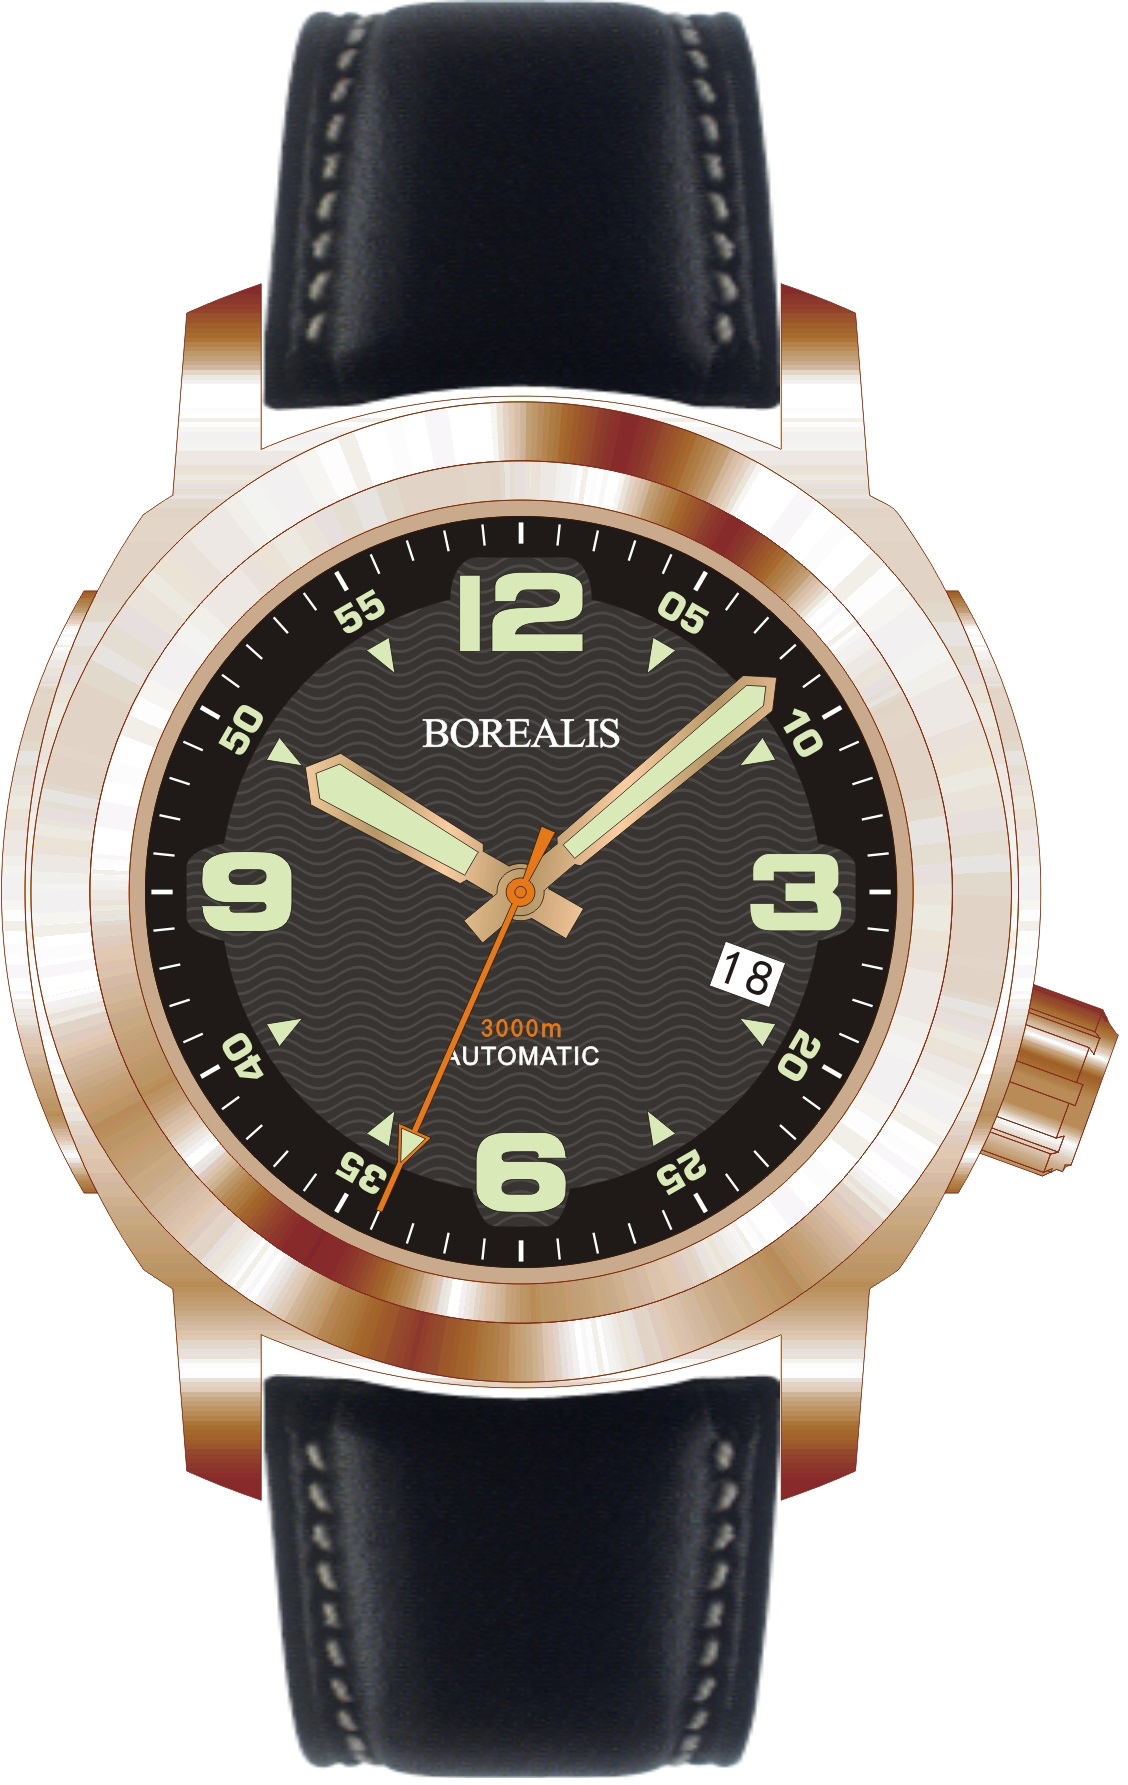 Borealis Batial Bronze CuSn8 Black 3000m Miyota 9015 Automatic Diver Watch With Date Display BBCUSN8BLACKDATE